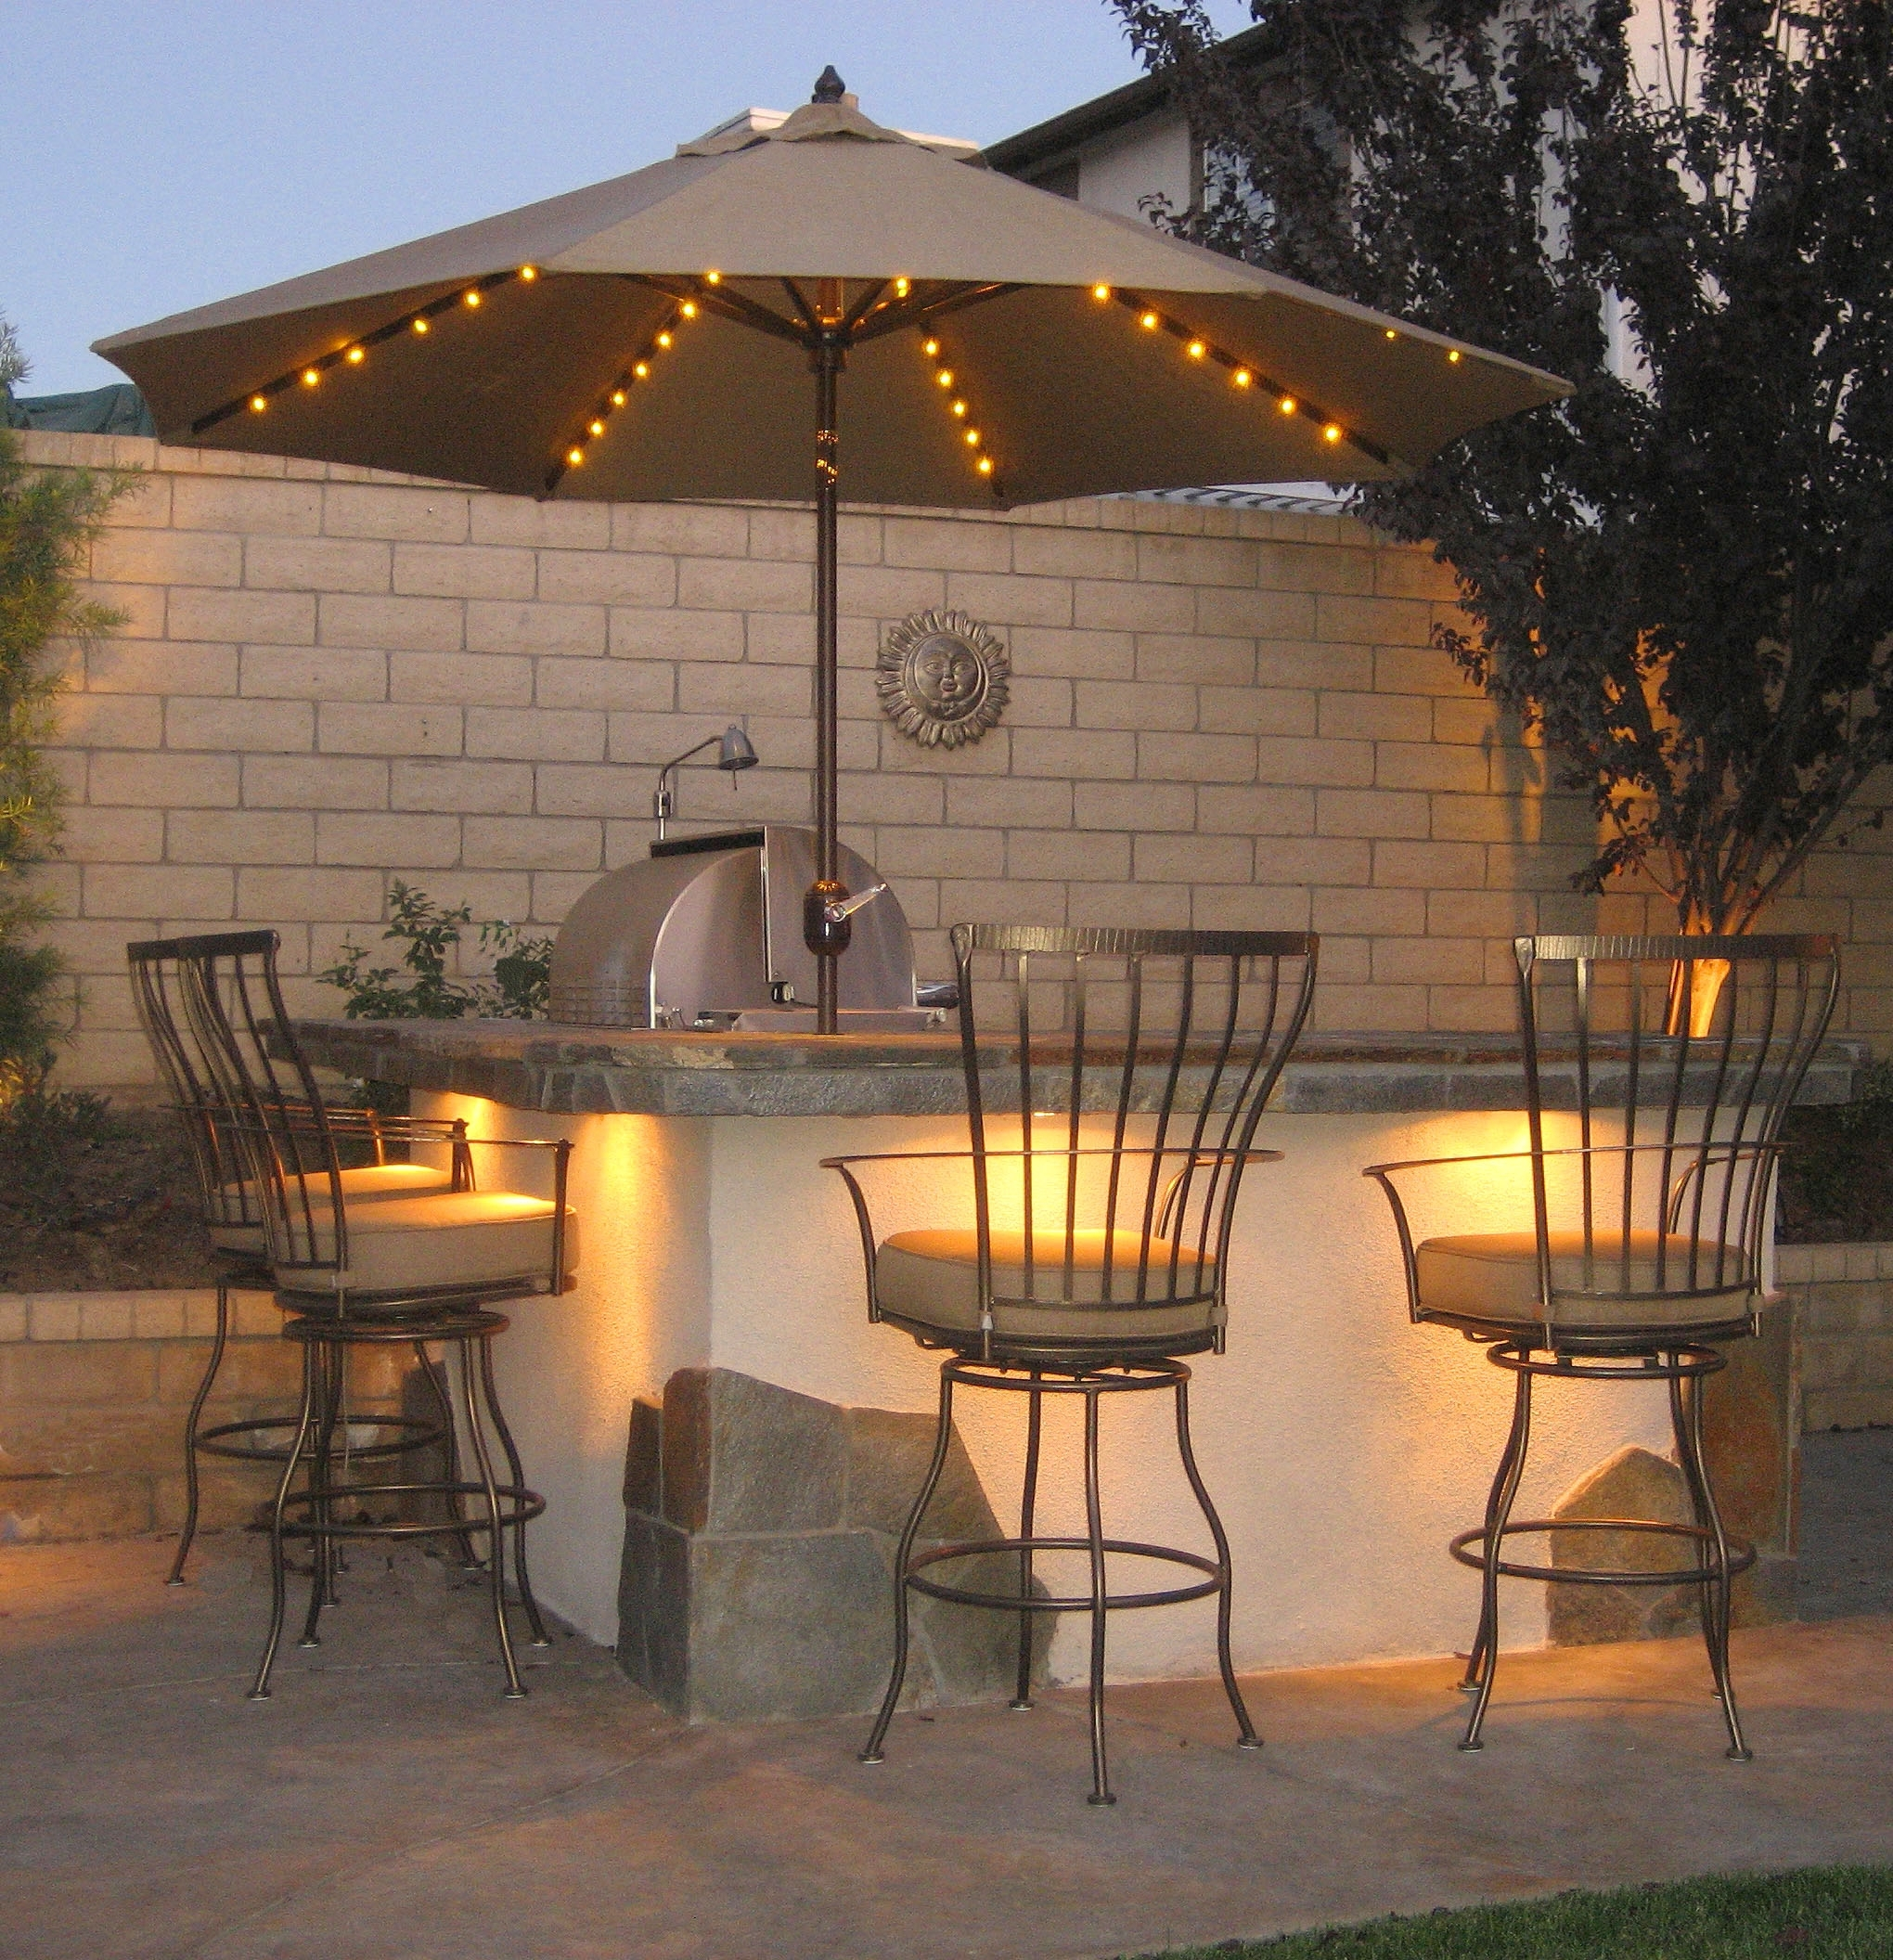 Lights For Patio Umbrella — Mistikcamping Home Design : Different In Recent Outdoor Umbrella Lanterns (View 11 of 20)